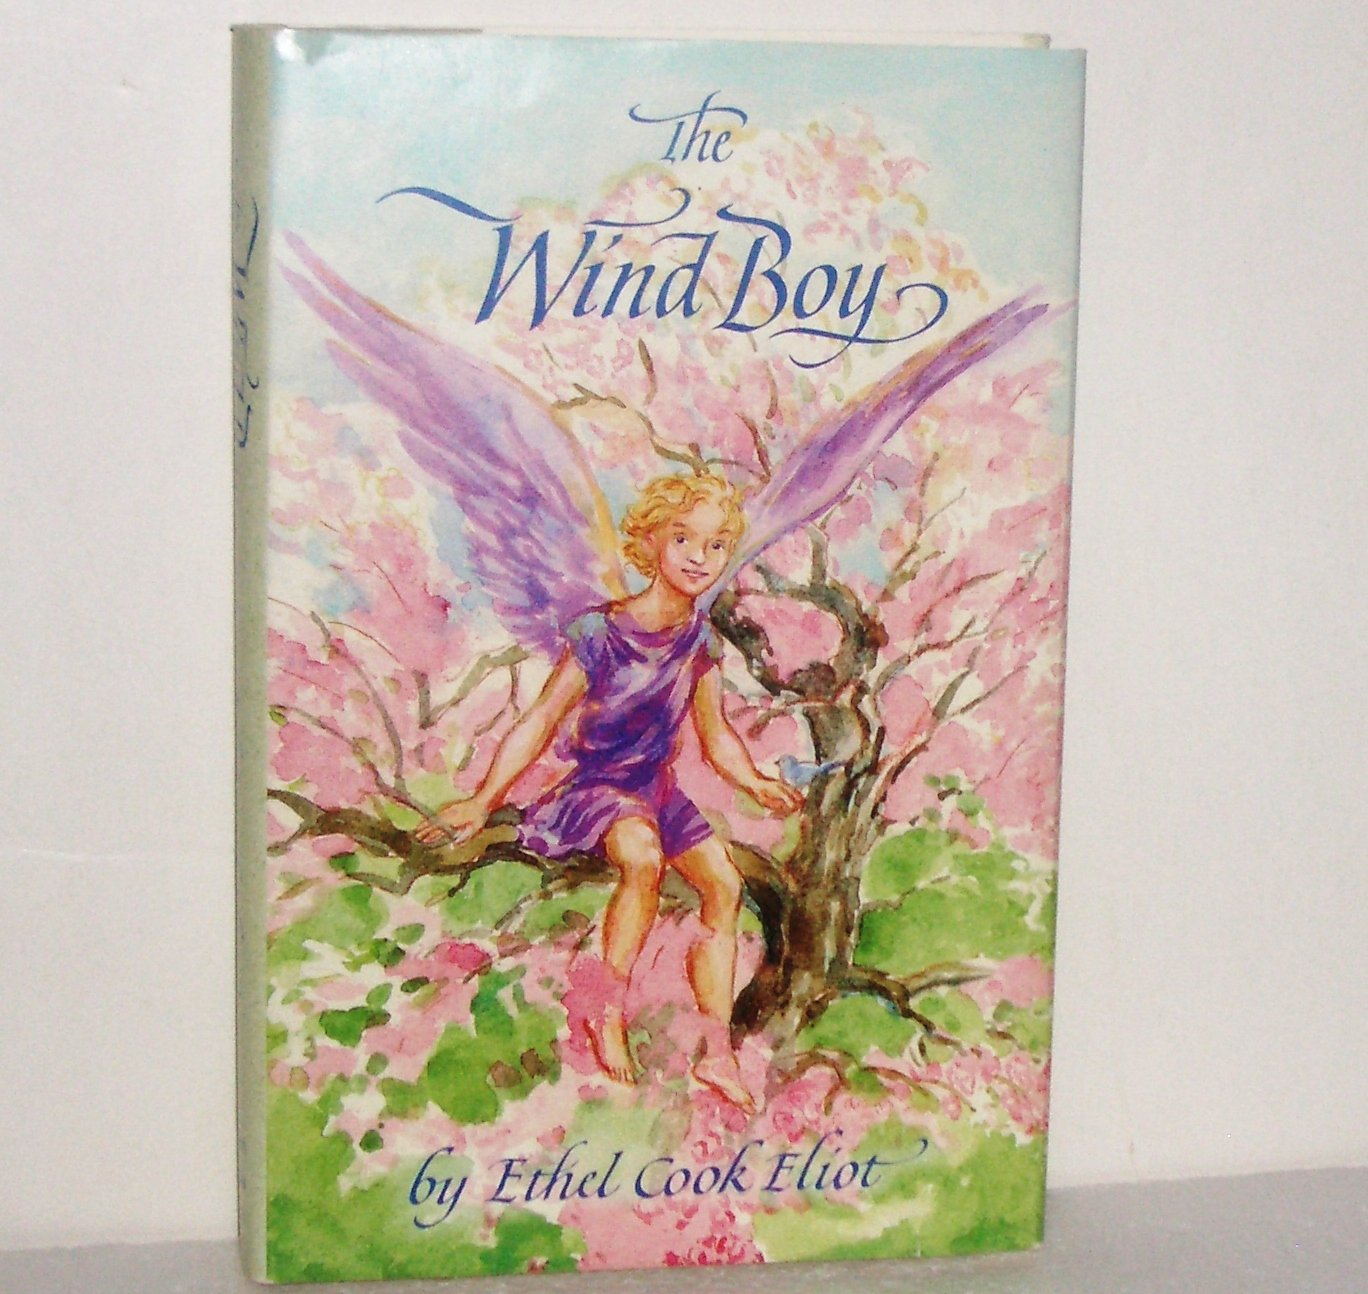 The Wind Boy by ETHEL COOK ELIOT Hardcover with Dust Jacket 1996 Childrens Book